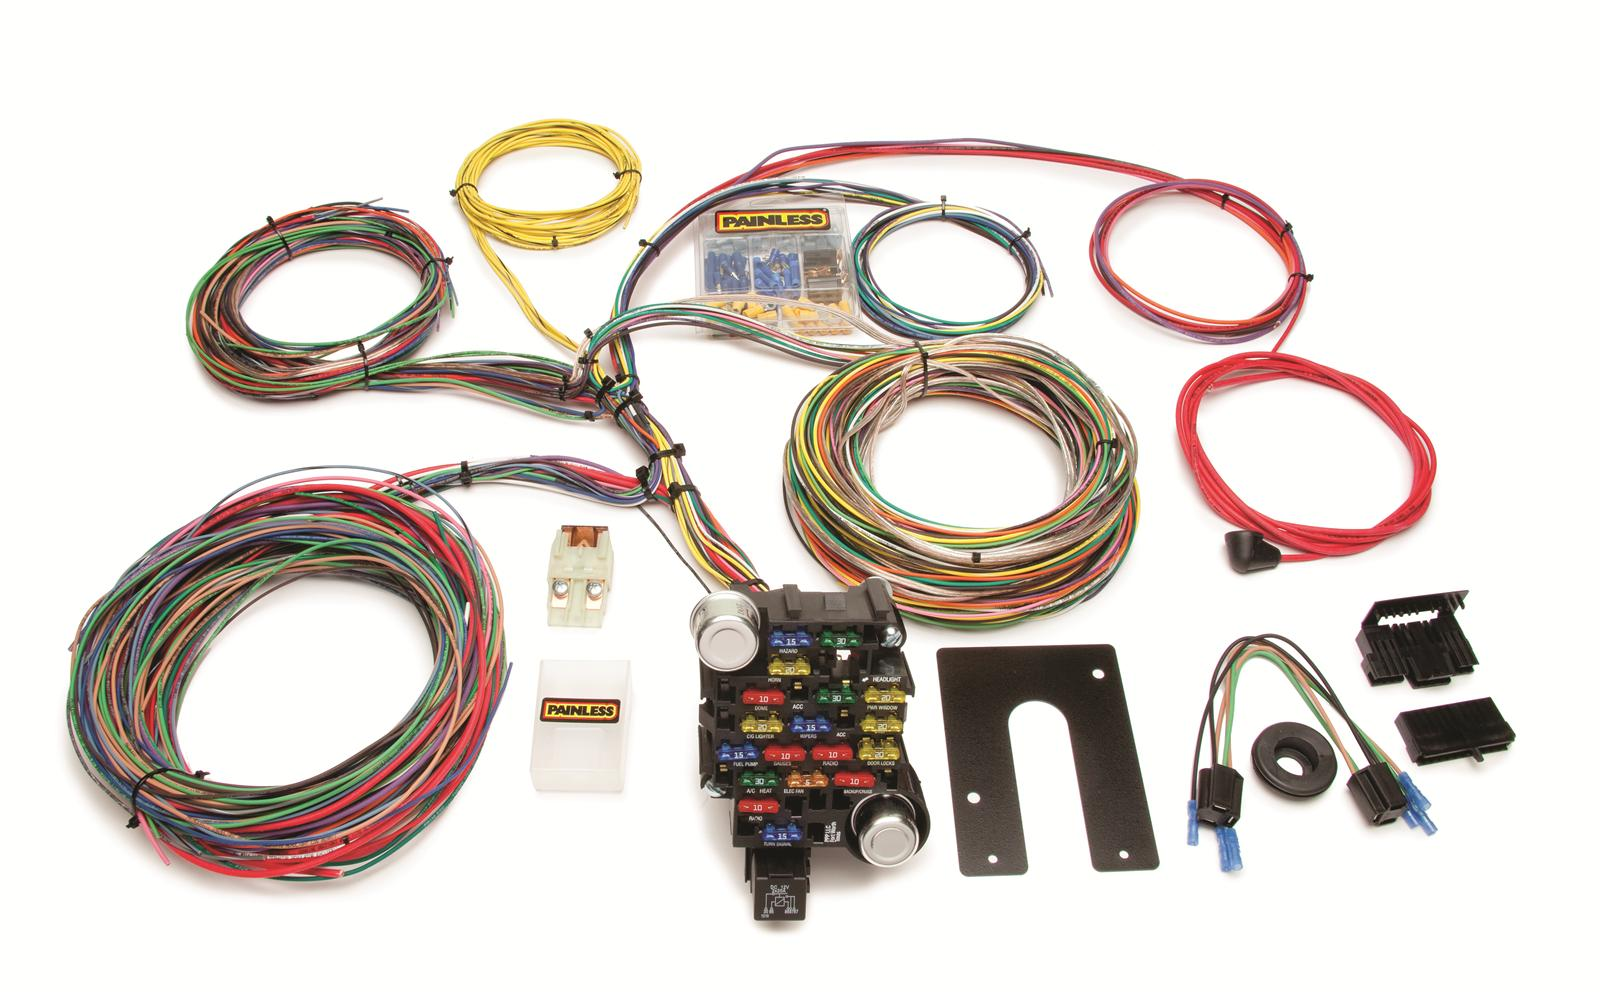 painless performance 28 circuit universal harnesses 10202 free Painless Wiring Diagram Chevy painless performance 28 circuit universal harnesses 10202 free shipping on orders over $99 at summit racing